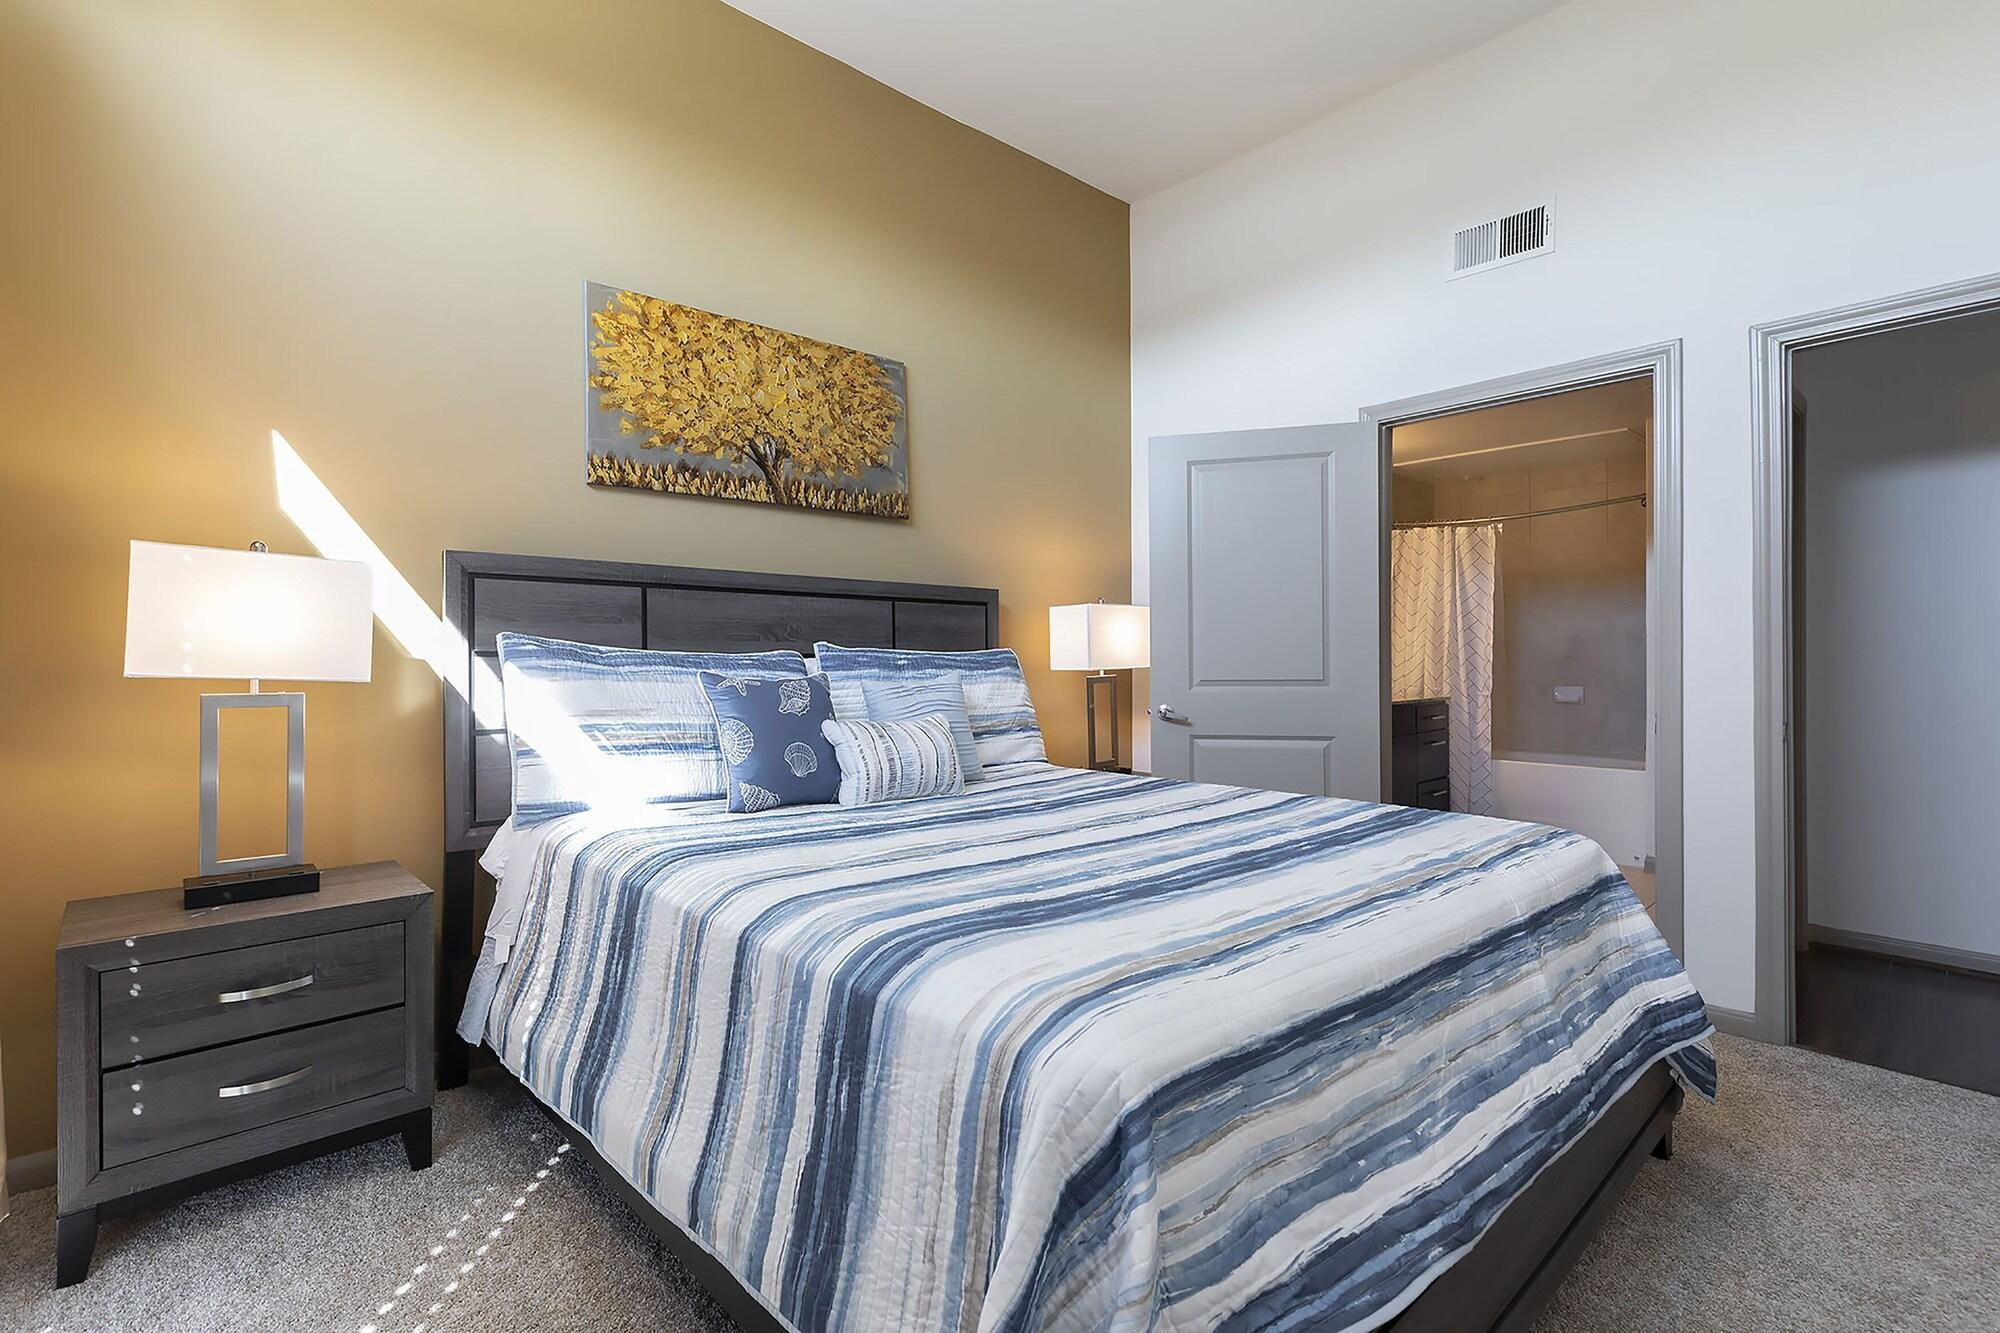 Luxurious Cali King BED Midtown Fully Equipped Condo